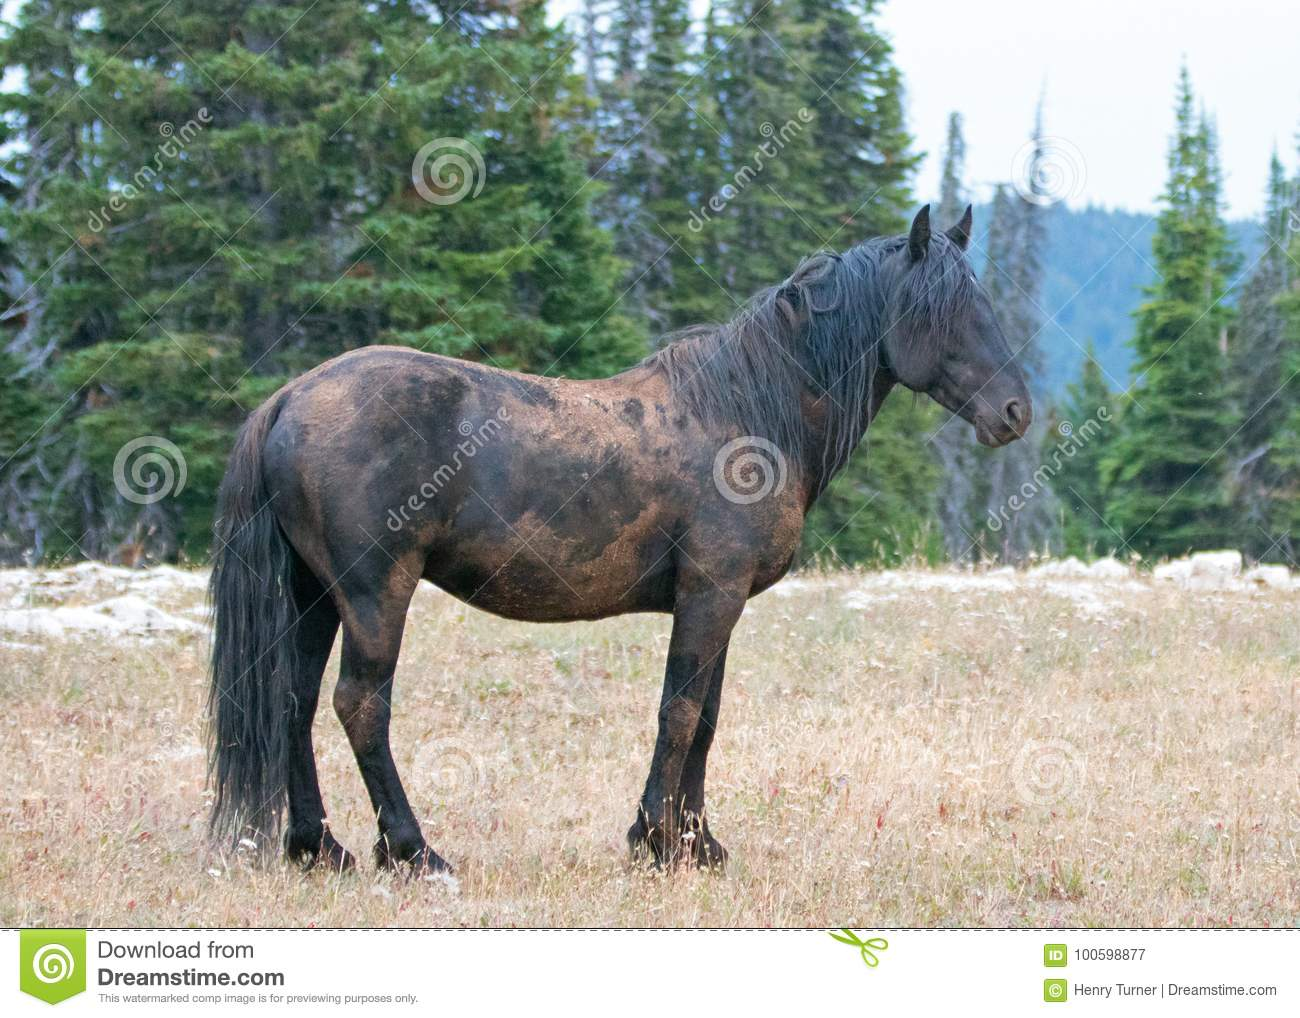 Wild Horse Mustang Black Band Stallion Who Had Just Rolled In The Dirt In The Pryor Mountains Wild Horse Range In Montana Usa Stock Image Image Of Dust Mountains 100598877